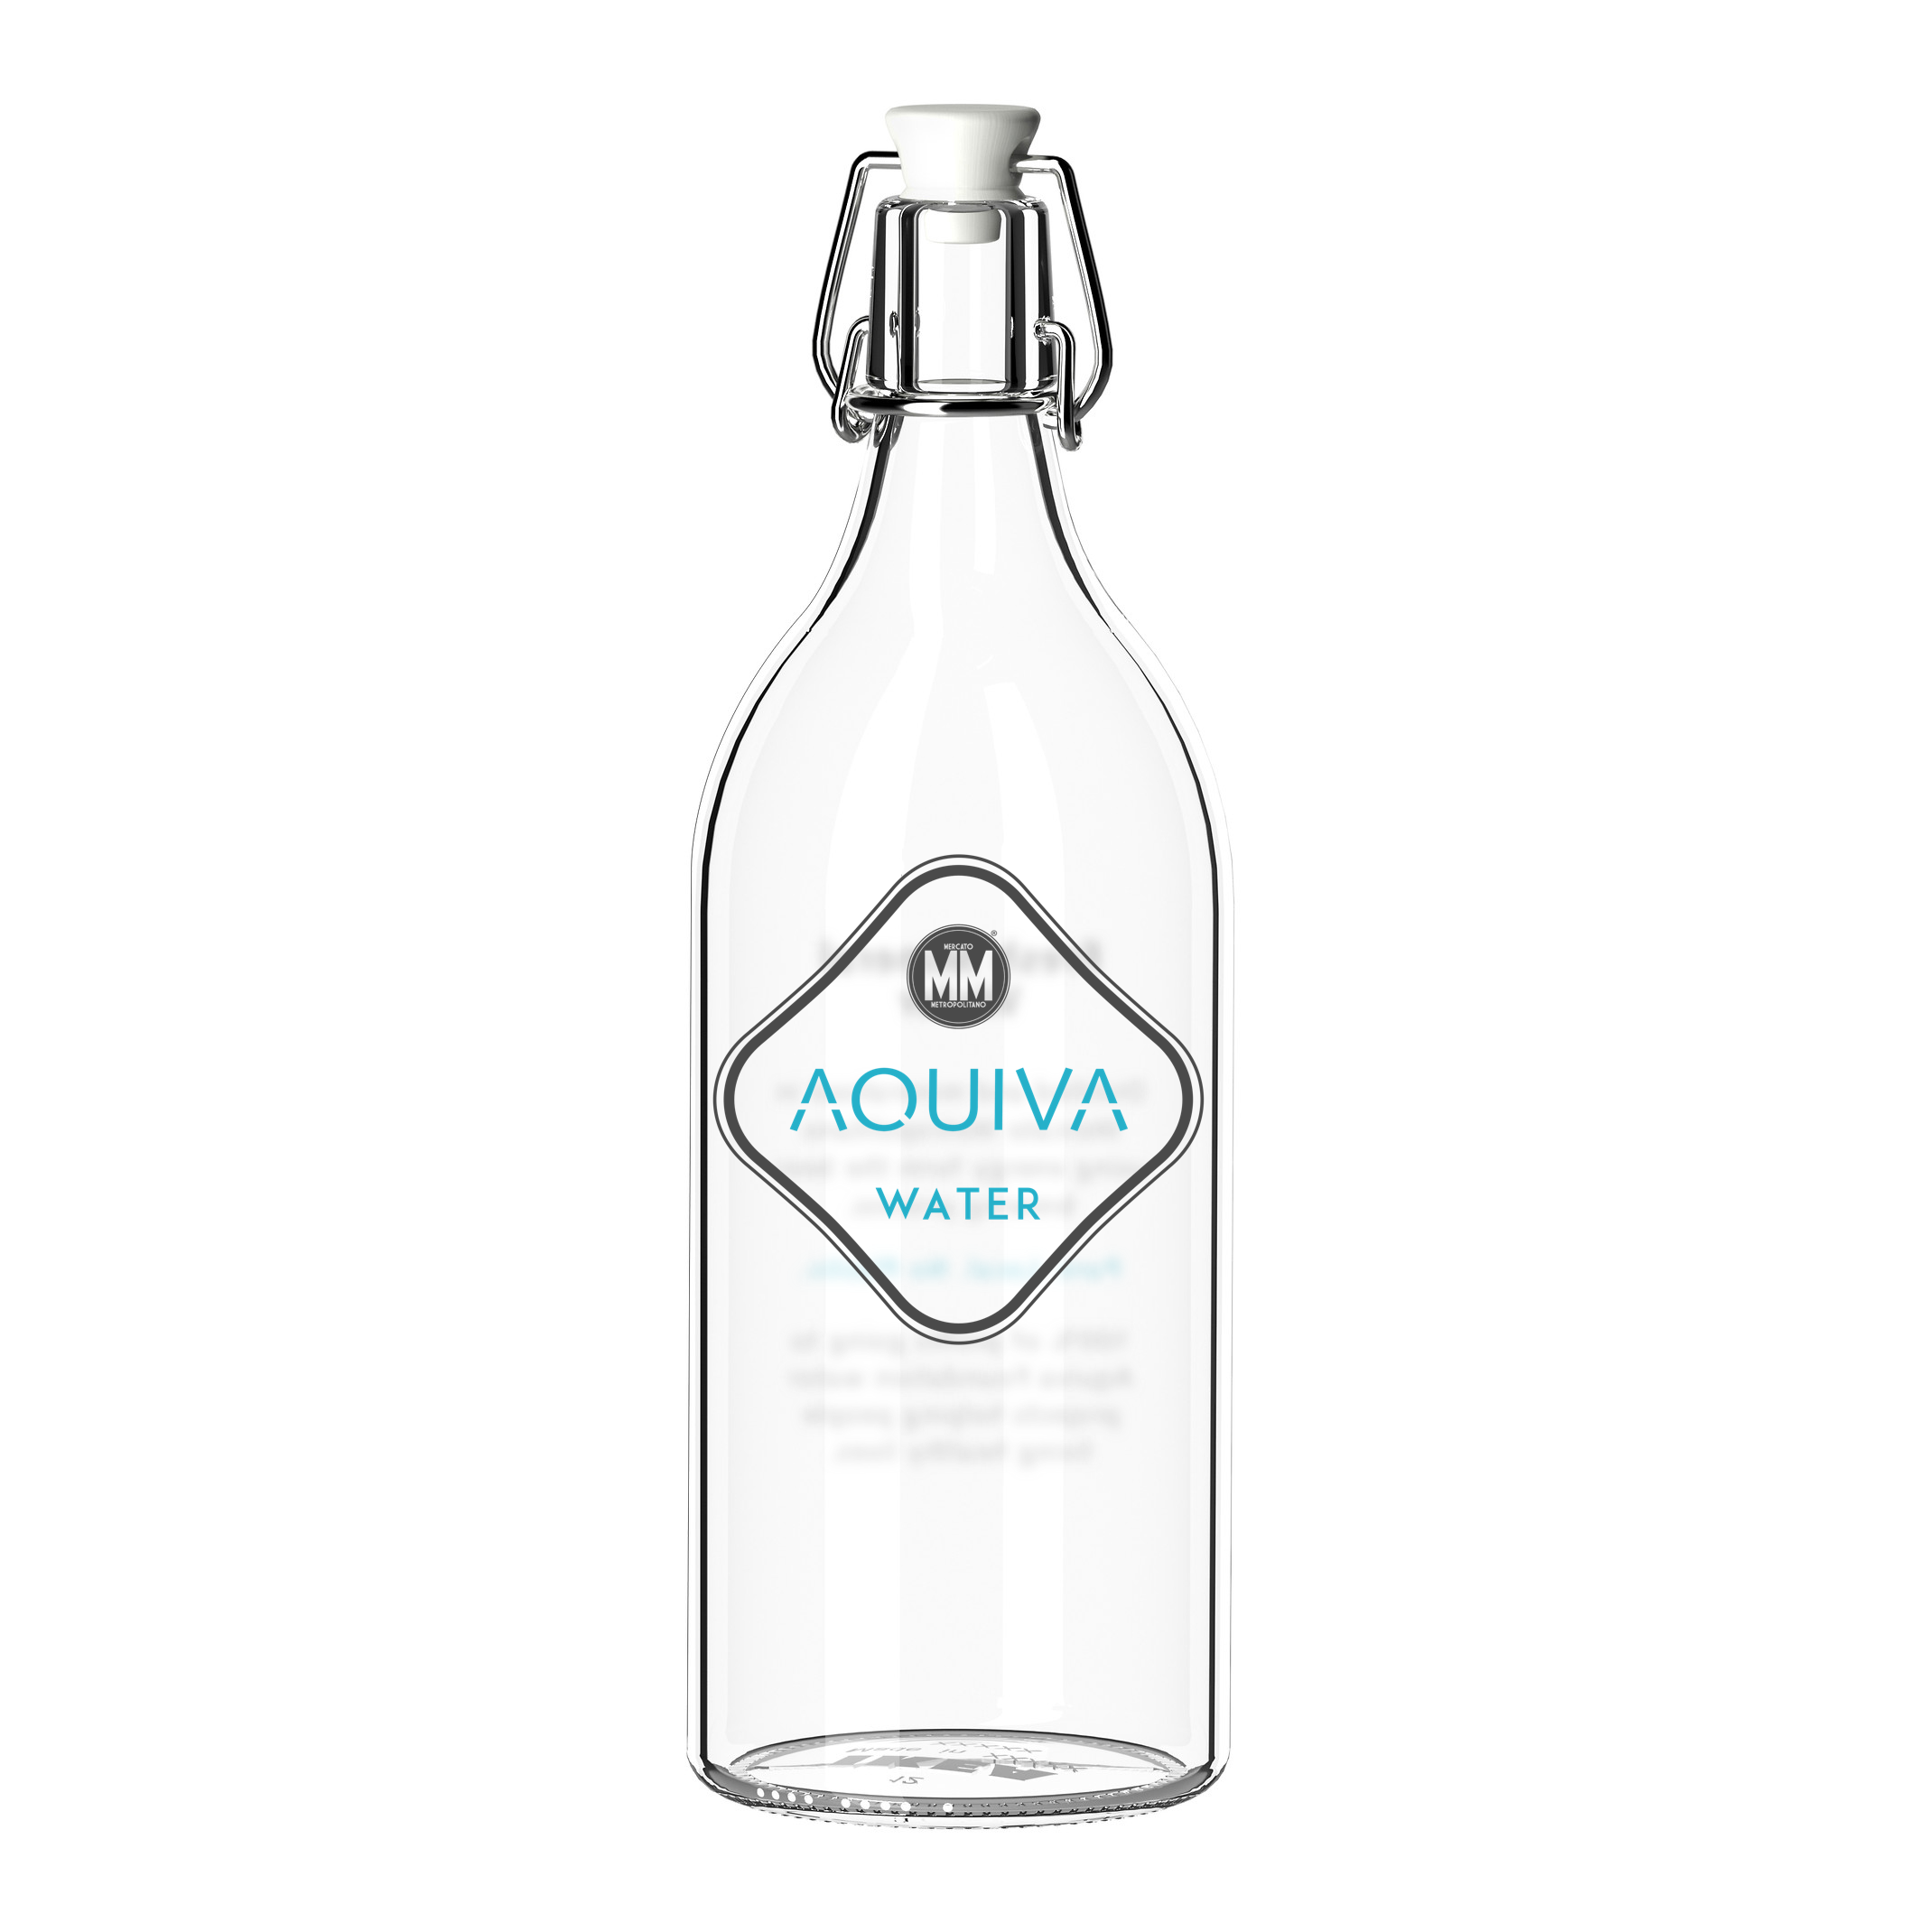 Mineralisation - Reusable glass bottles